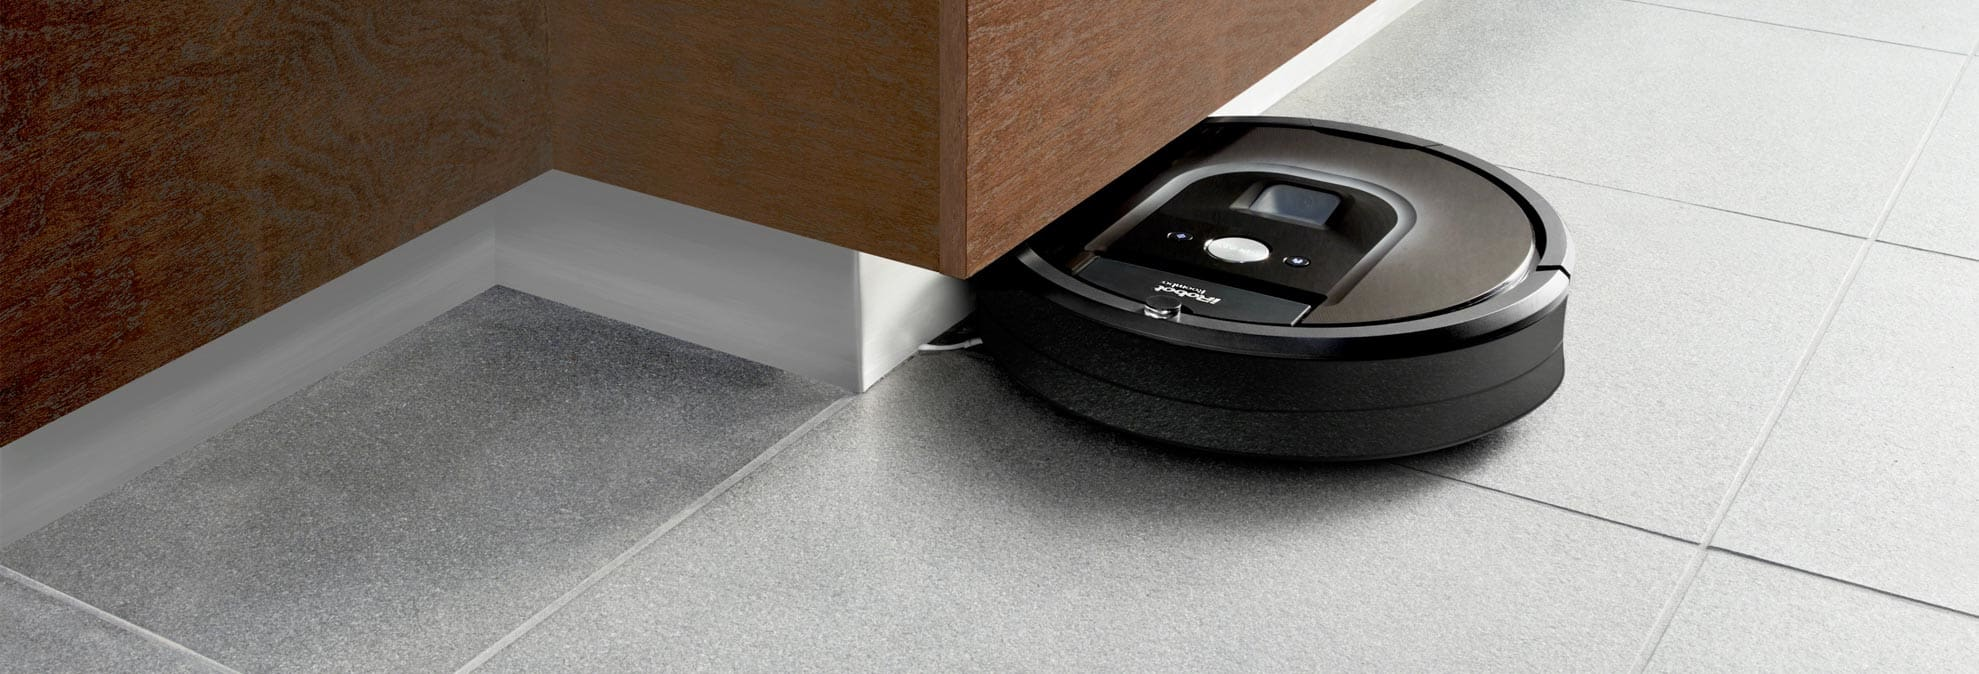 how to keep a roomba vacuum cleaner from collecting data about your home